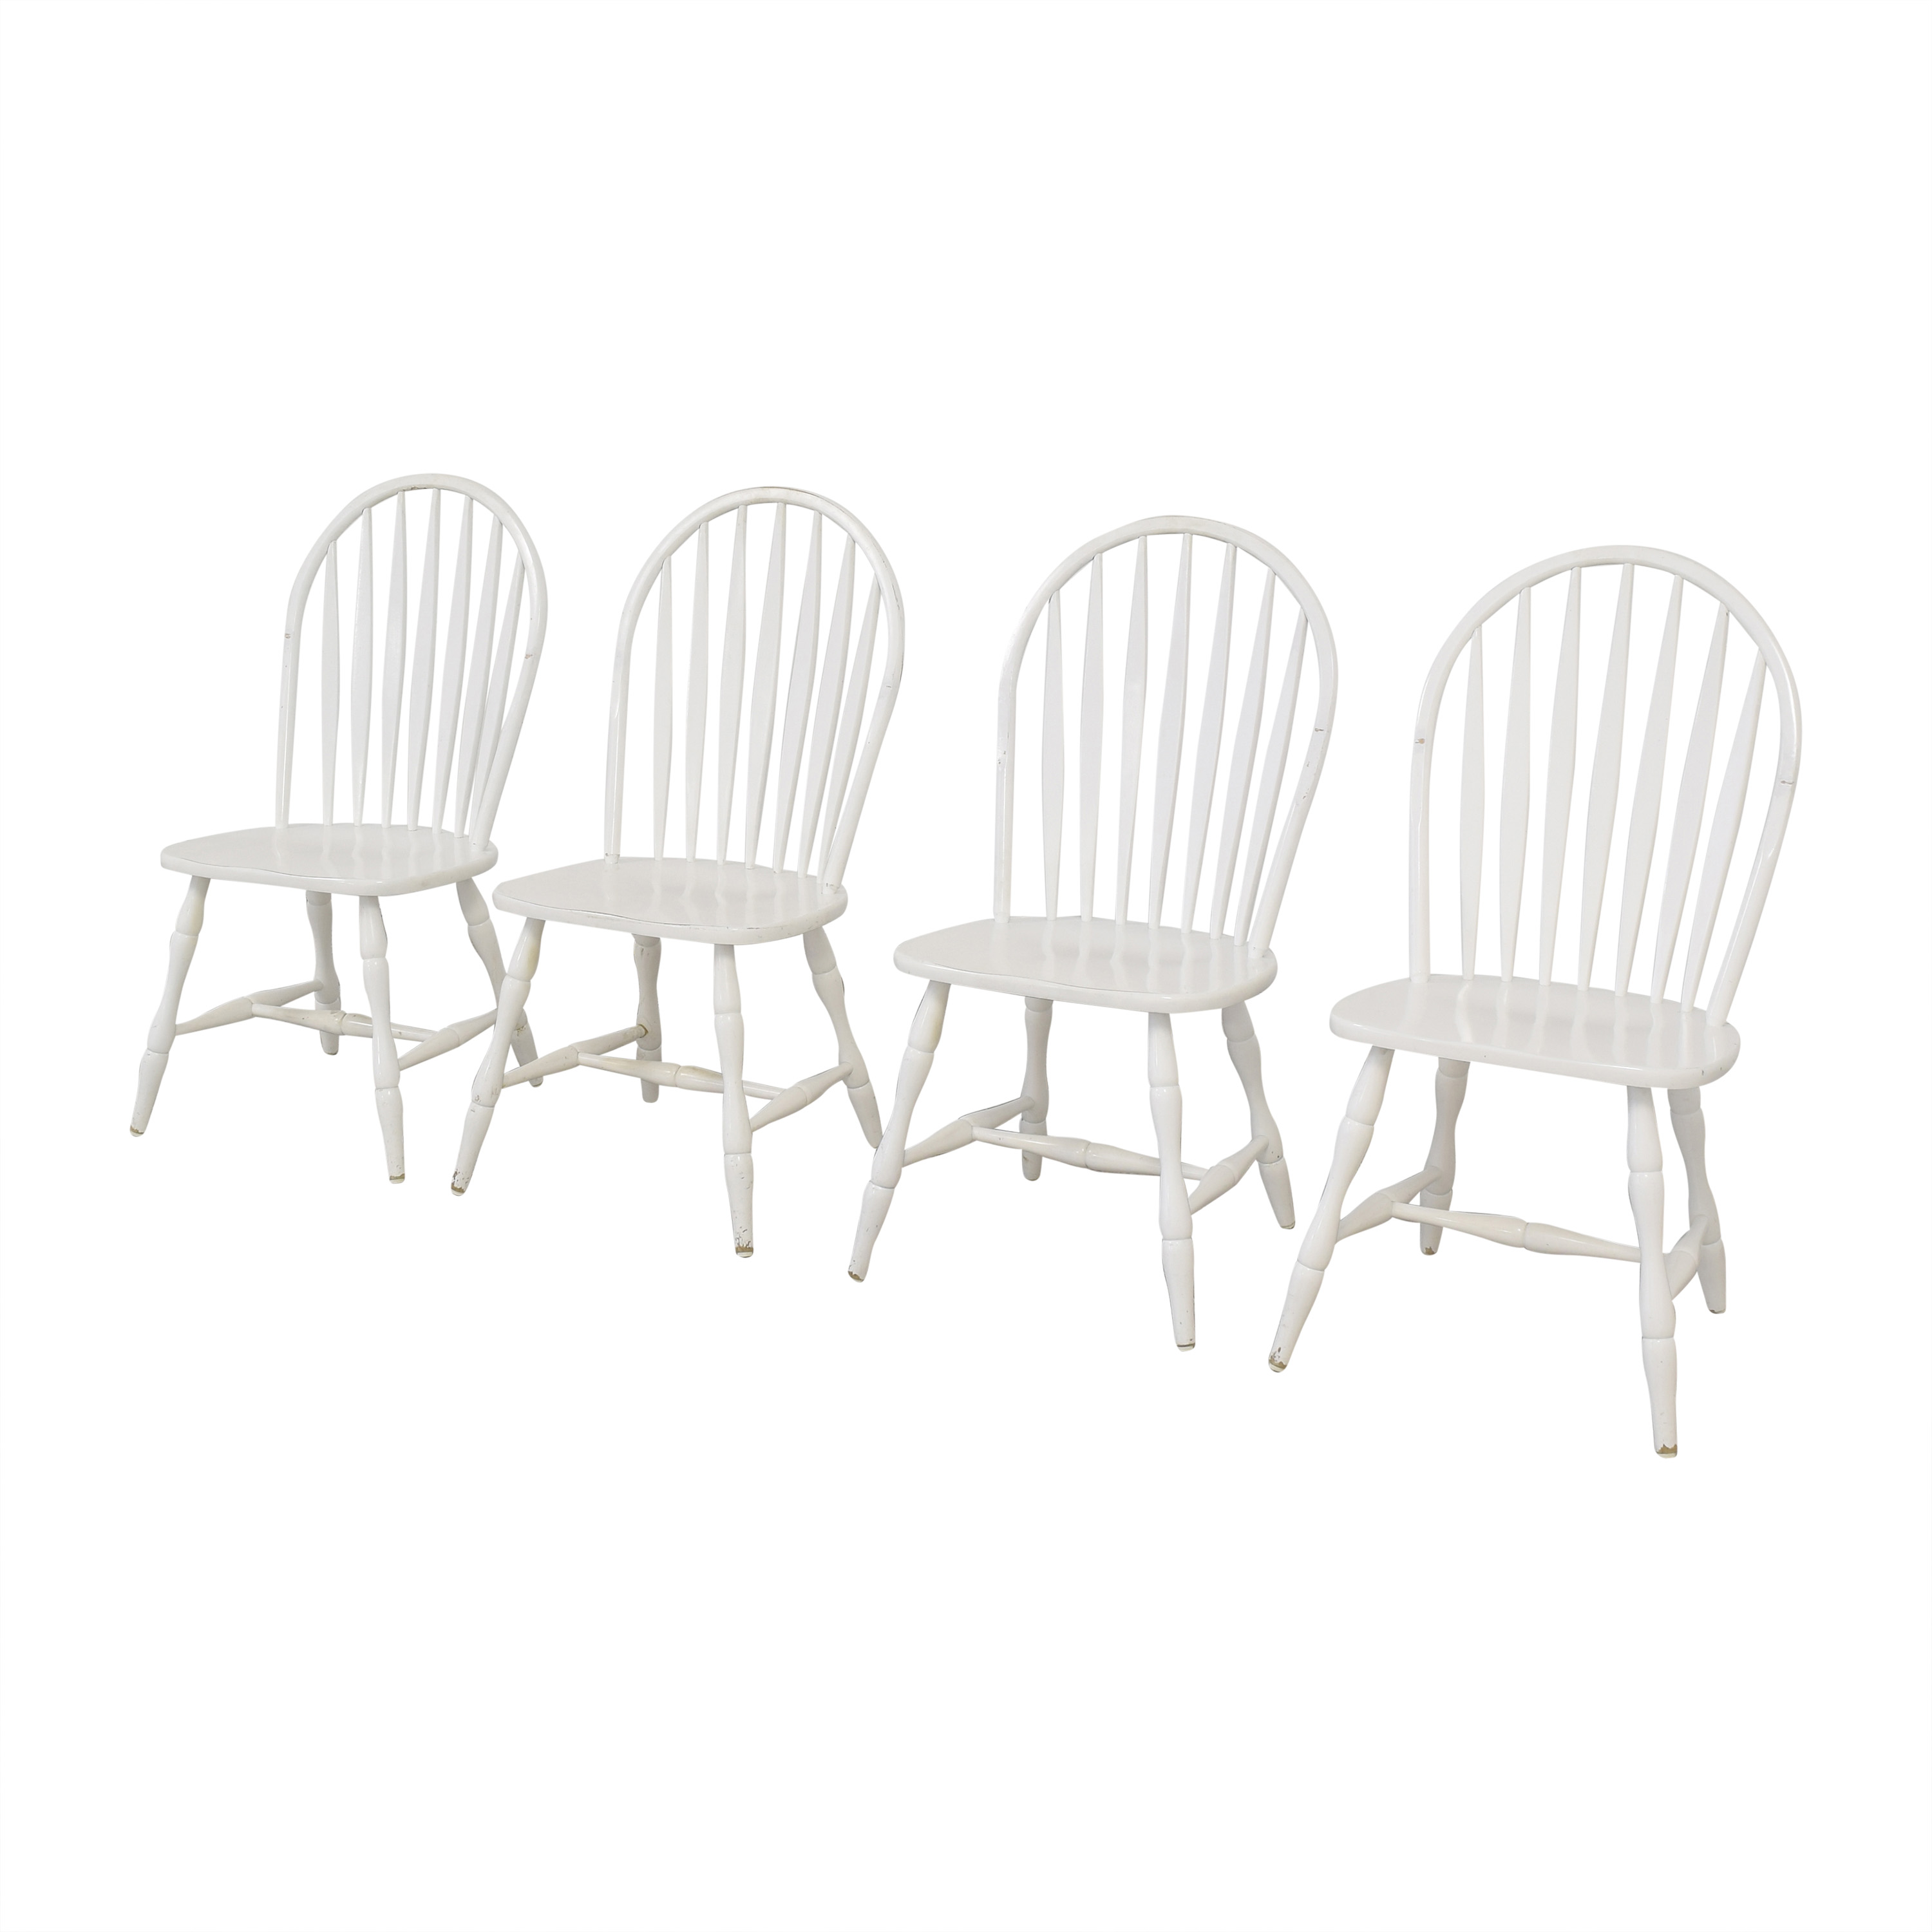 Canadel Canadel Windsor Dining Chairs for sale